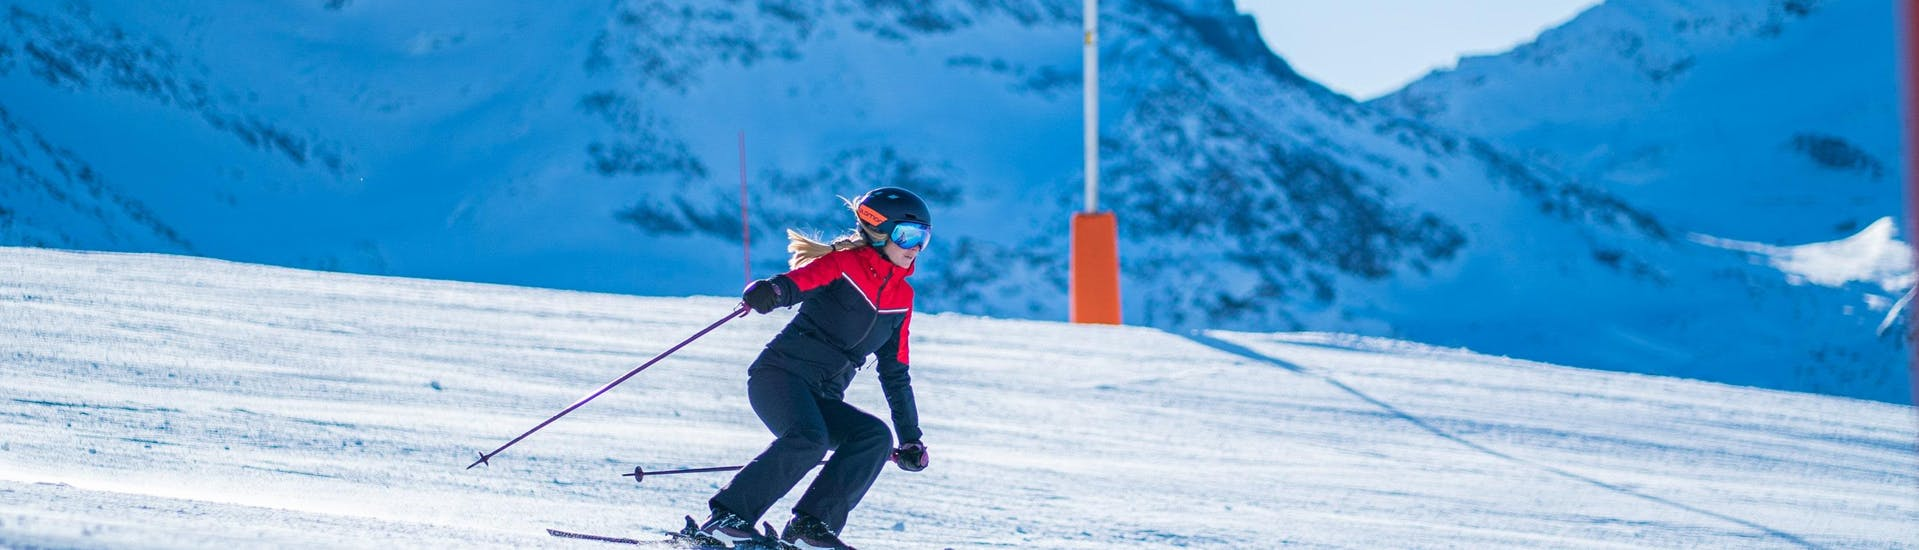 A skier is skiing down a slope with confidence thanks to her Private Ski Lessons for Adults of All Levels - Holidays with the ski school Evolution 2 Val Thorens.